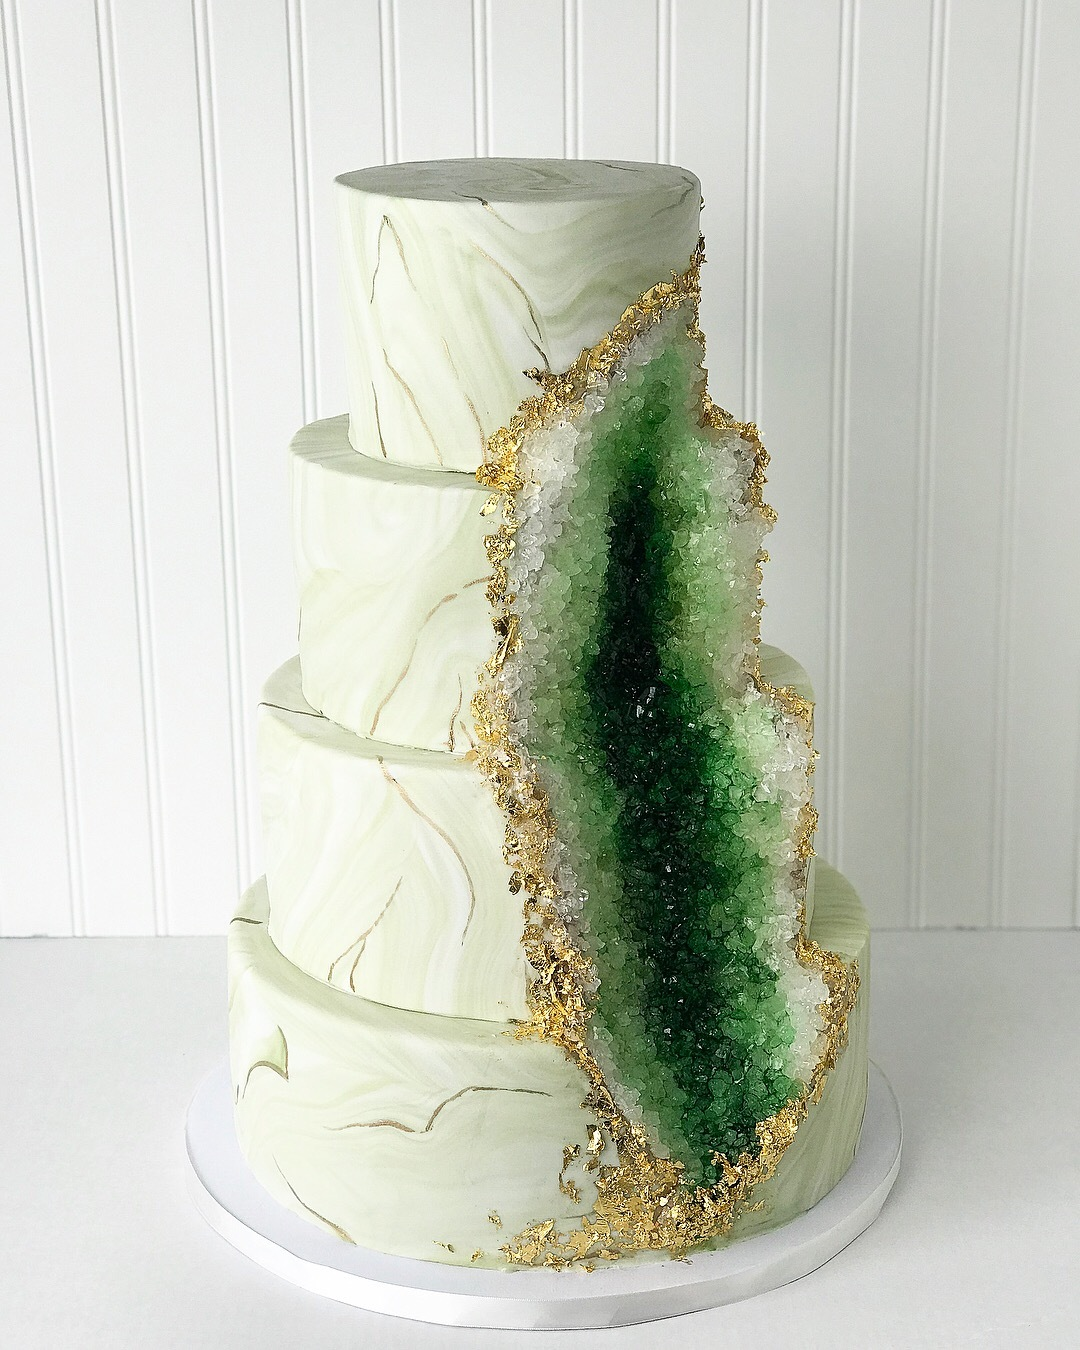 Green rock geode wedding cake